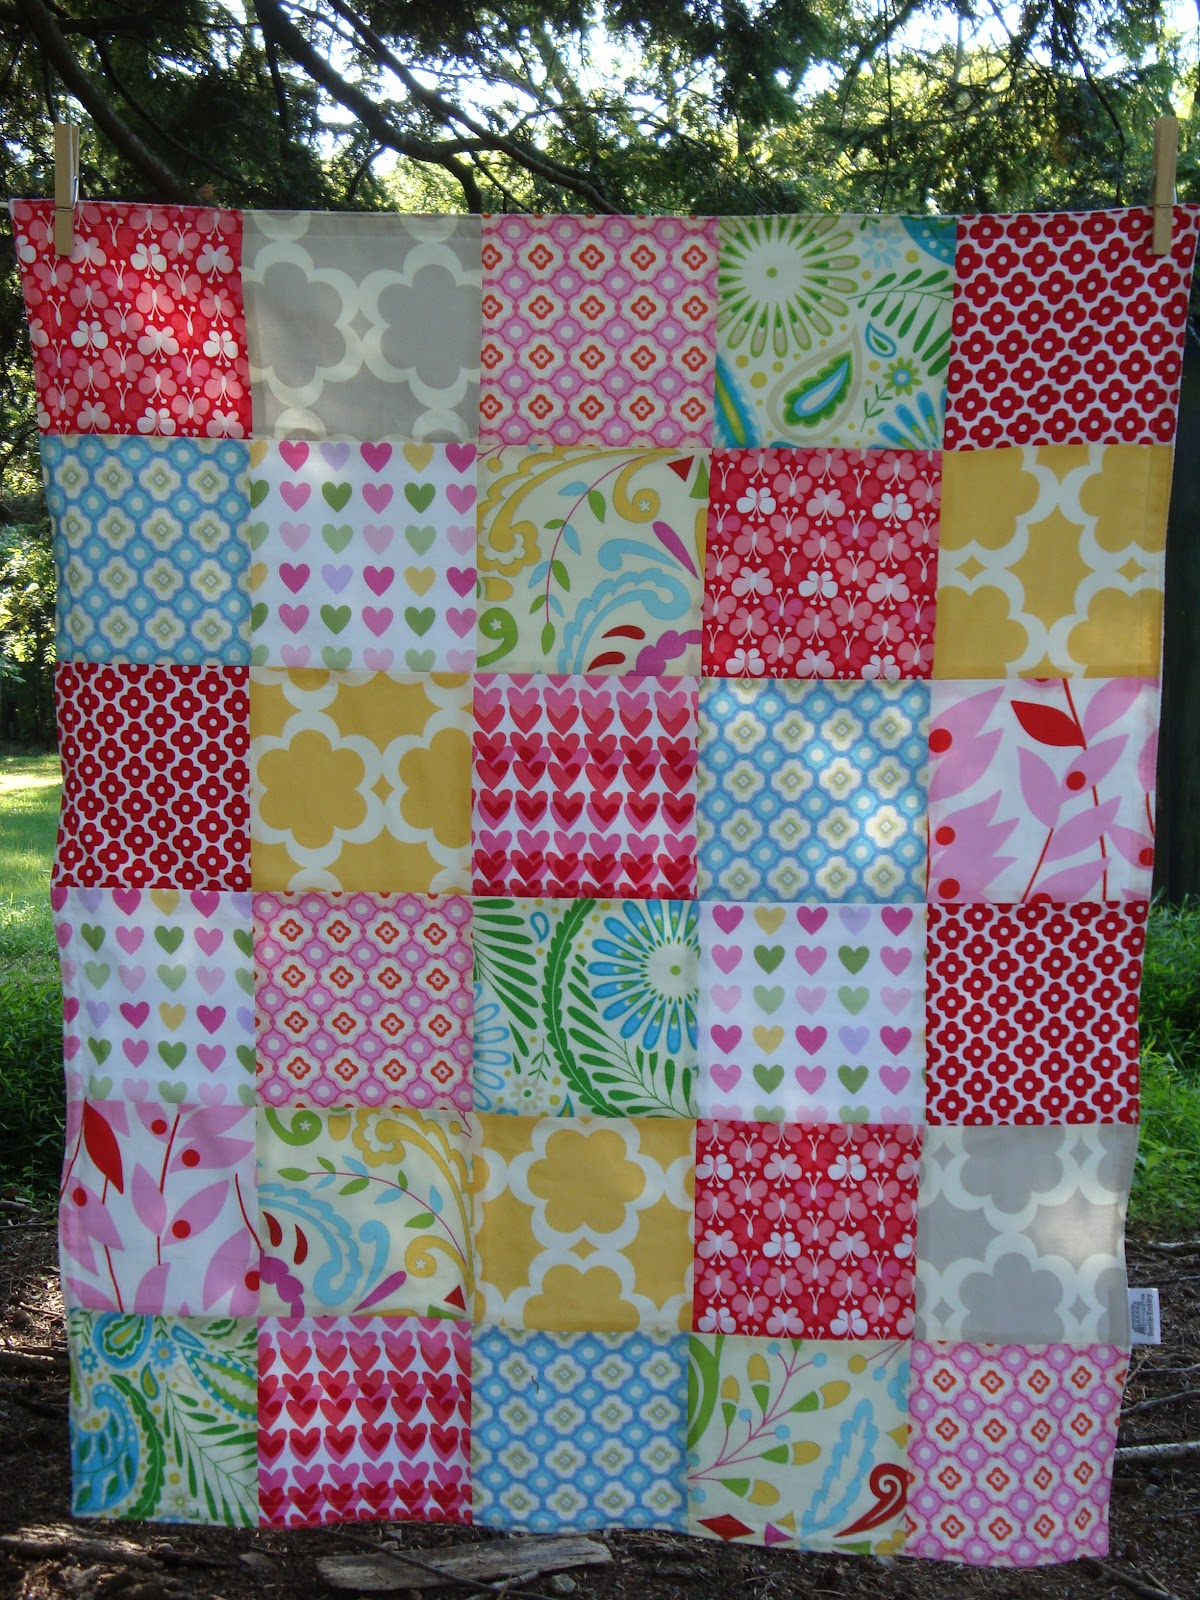 TEXTILE TROLLEY: How to make a patchwork baby blanket (no quilting ... : how to make a patchwork quilt - Adamdwight.com